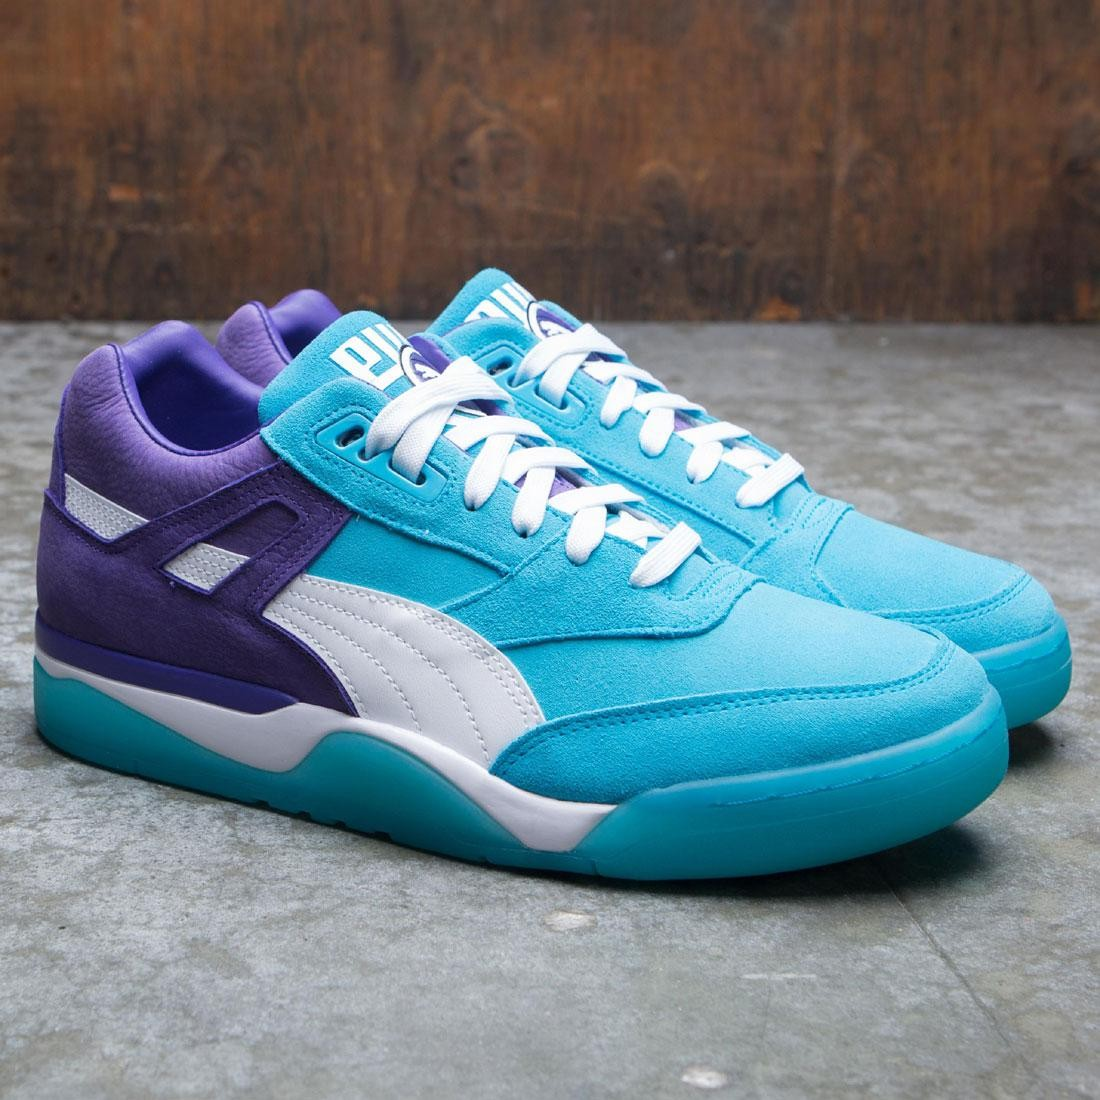 Queen Cityblue Palace Guard Prism Violet Puma Men eWrdCxBo